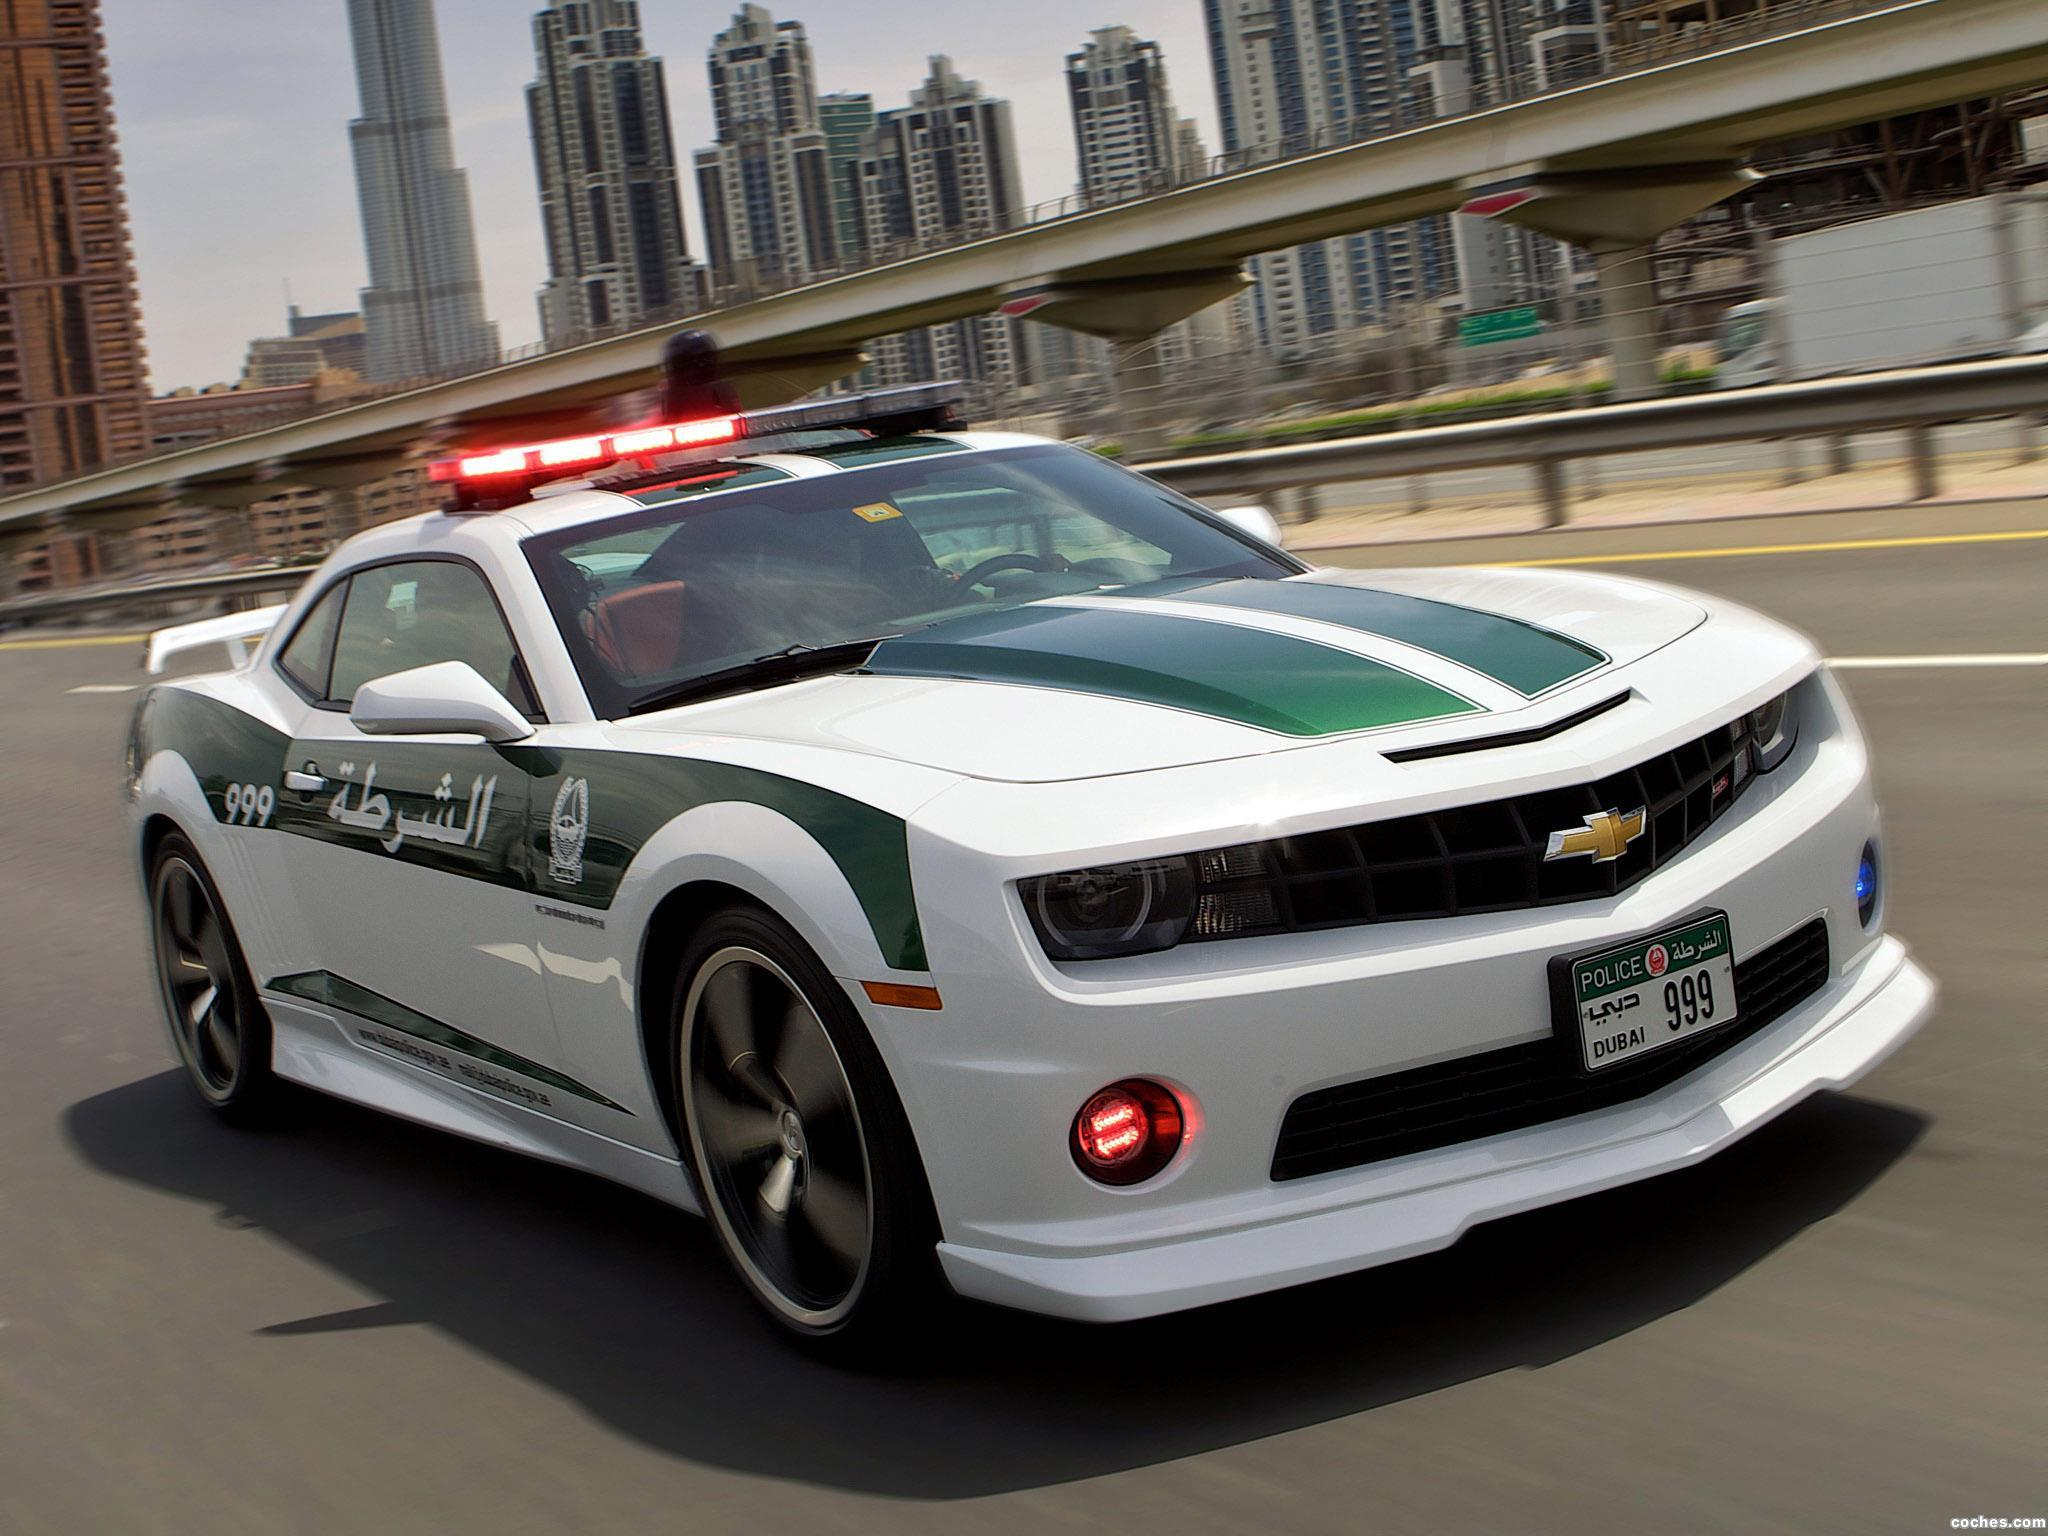 chevrolet_camaro-ss-police-car-2013_r2 Cool Bugatti Veyron Price In Uae 2015 Cars Trend